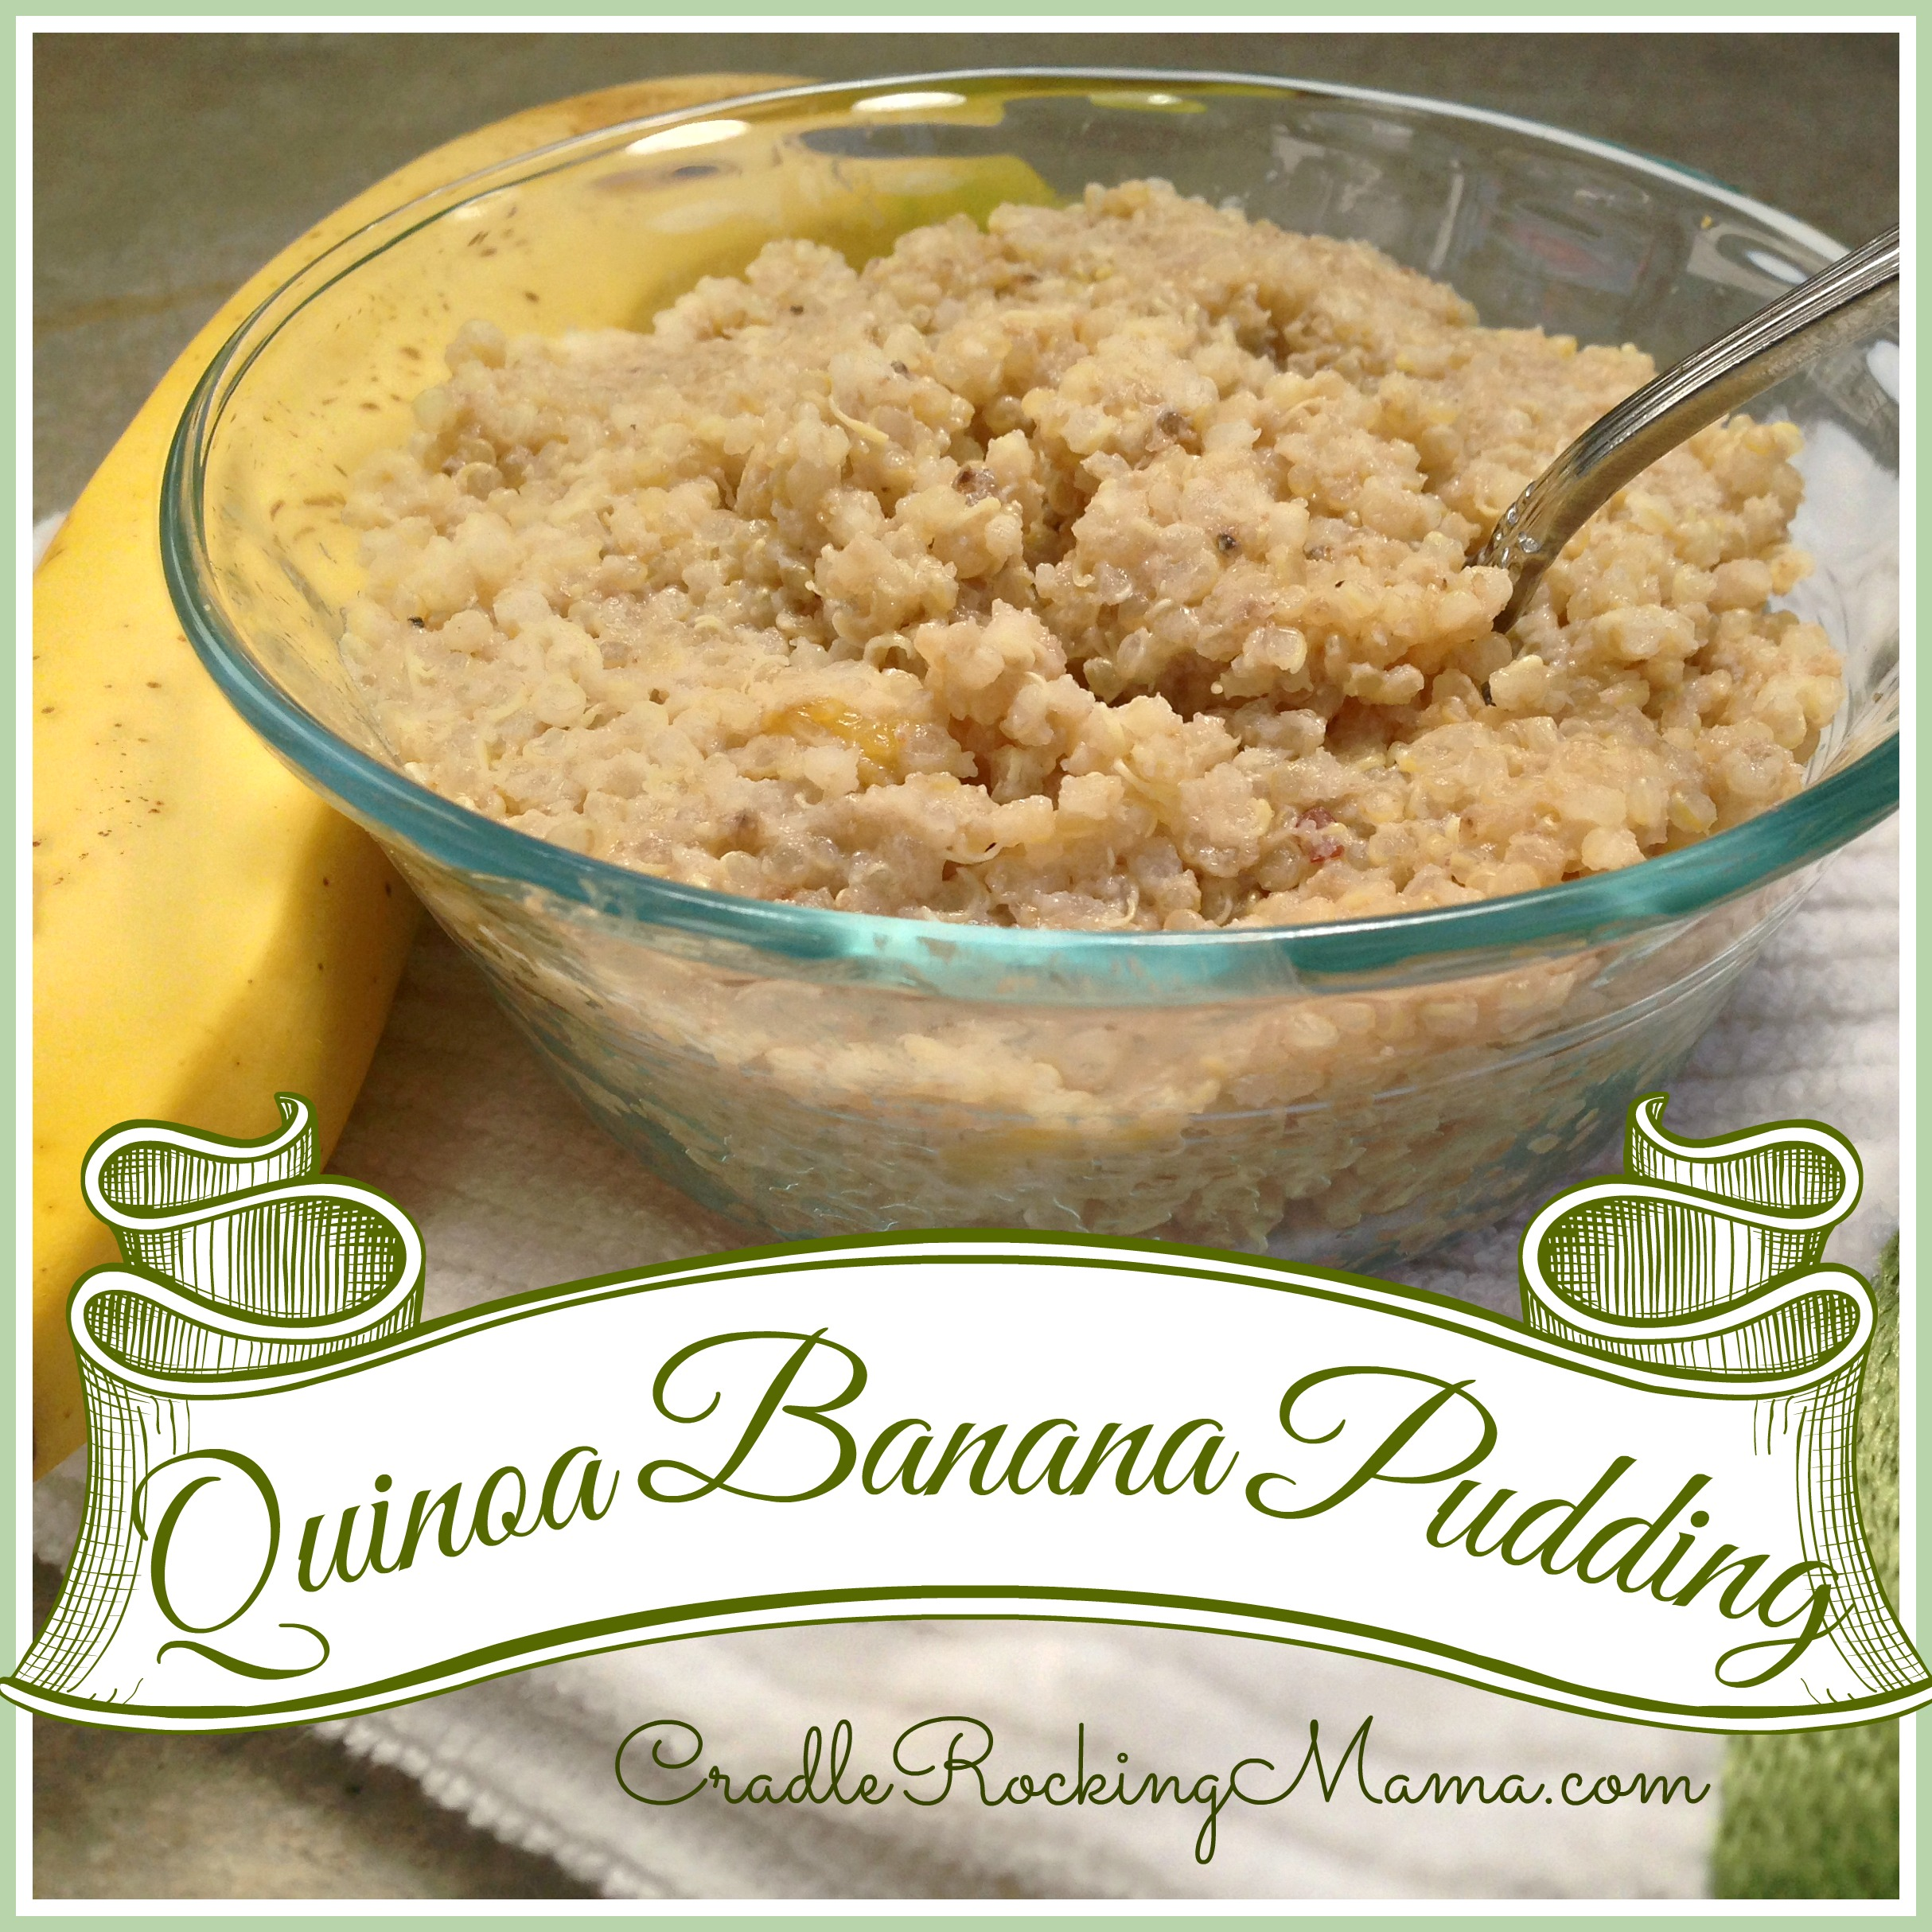 ... , here's a recent development in my kitchen: Quinoa Banana Pudding